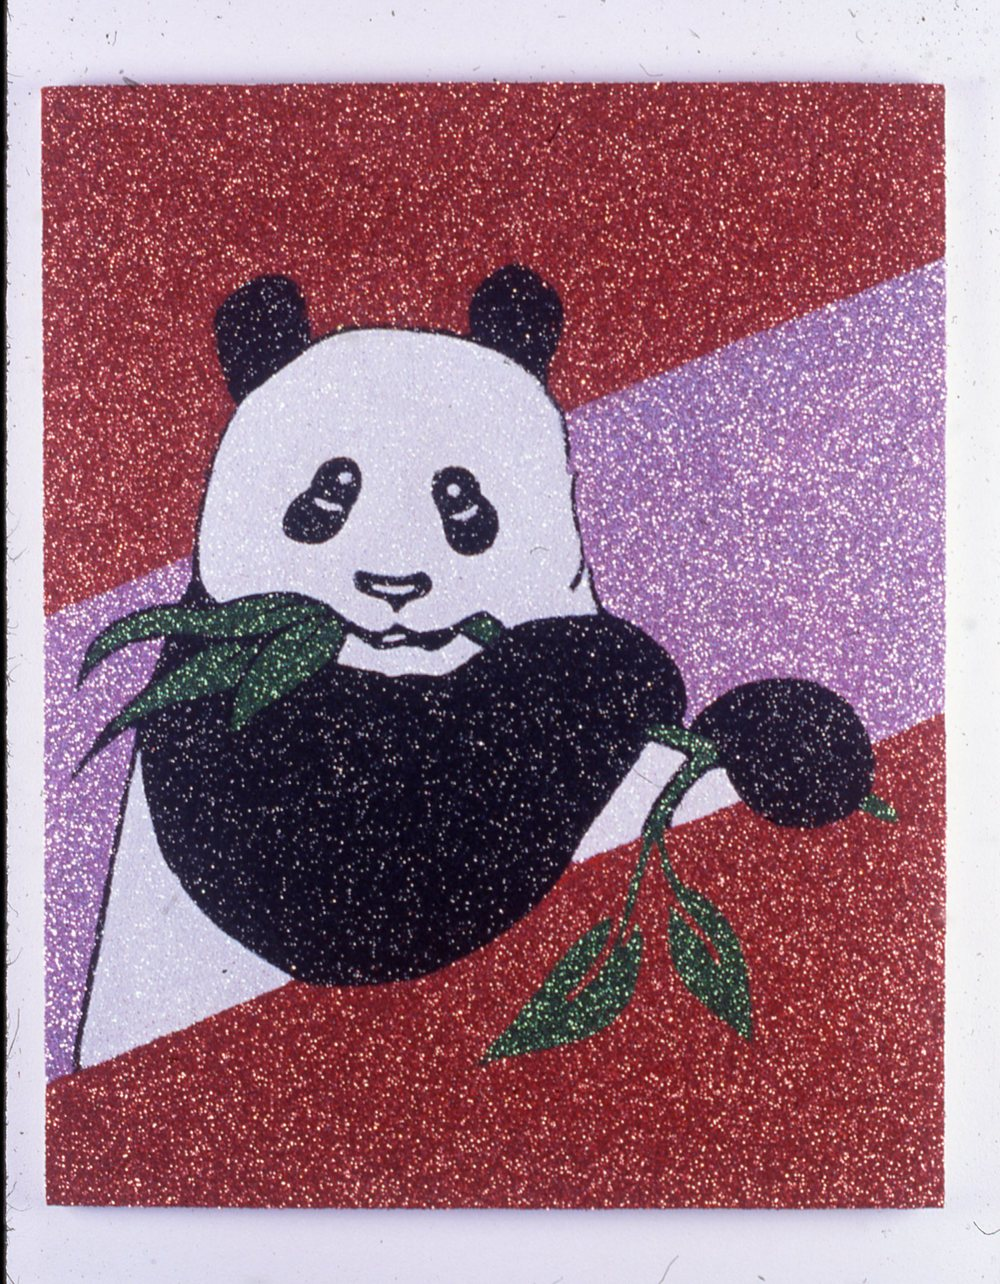 Power of the Panda (Strawberry)